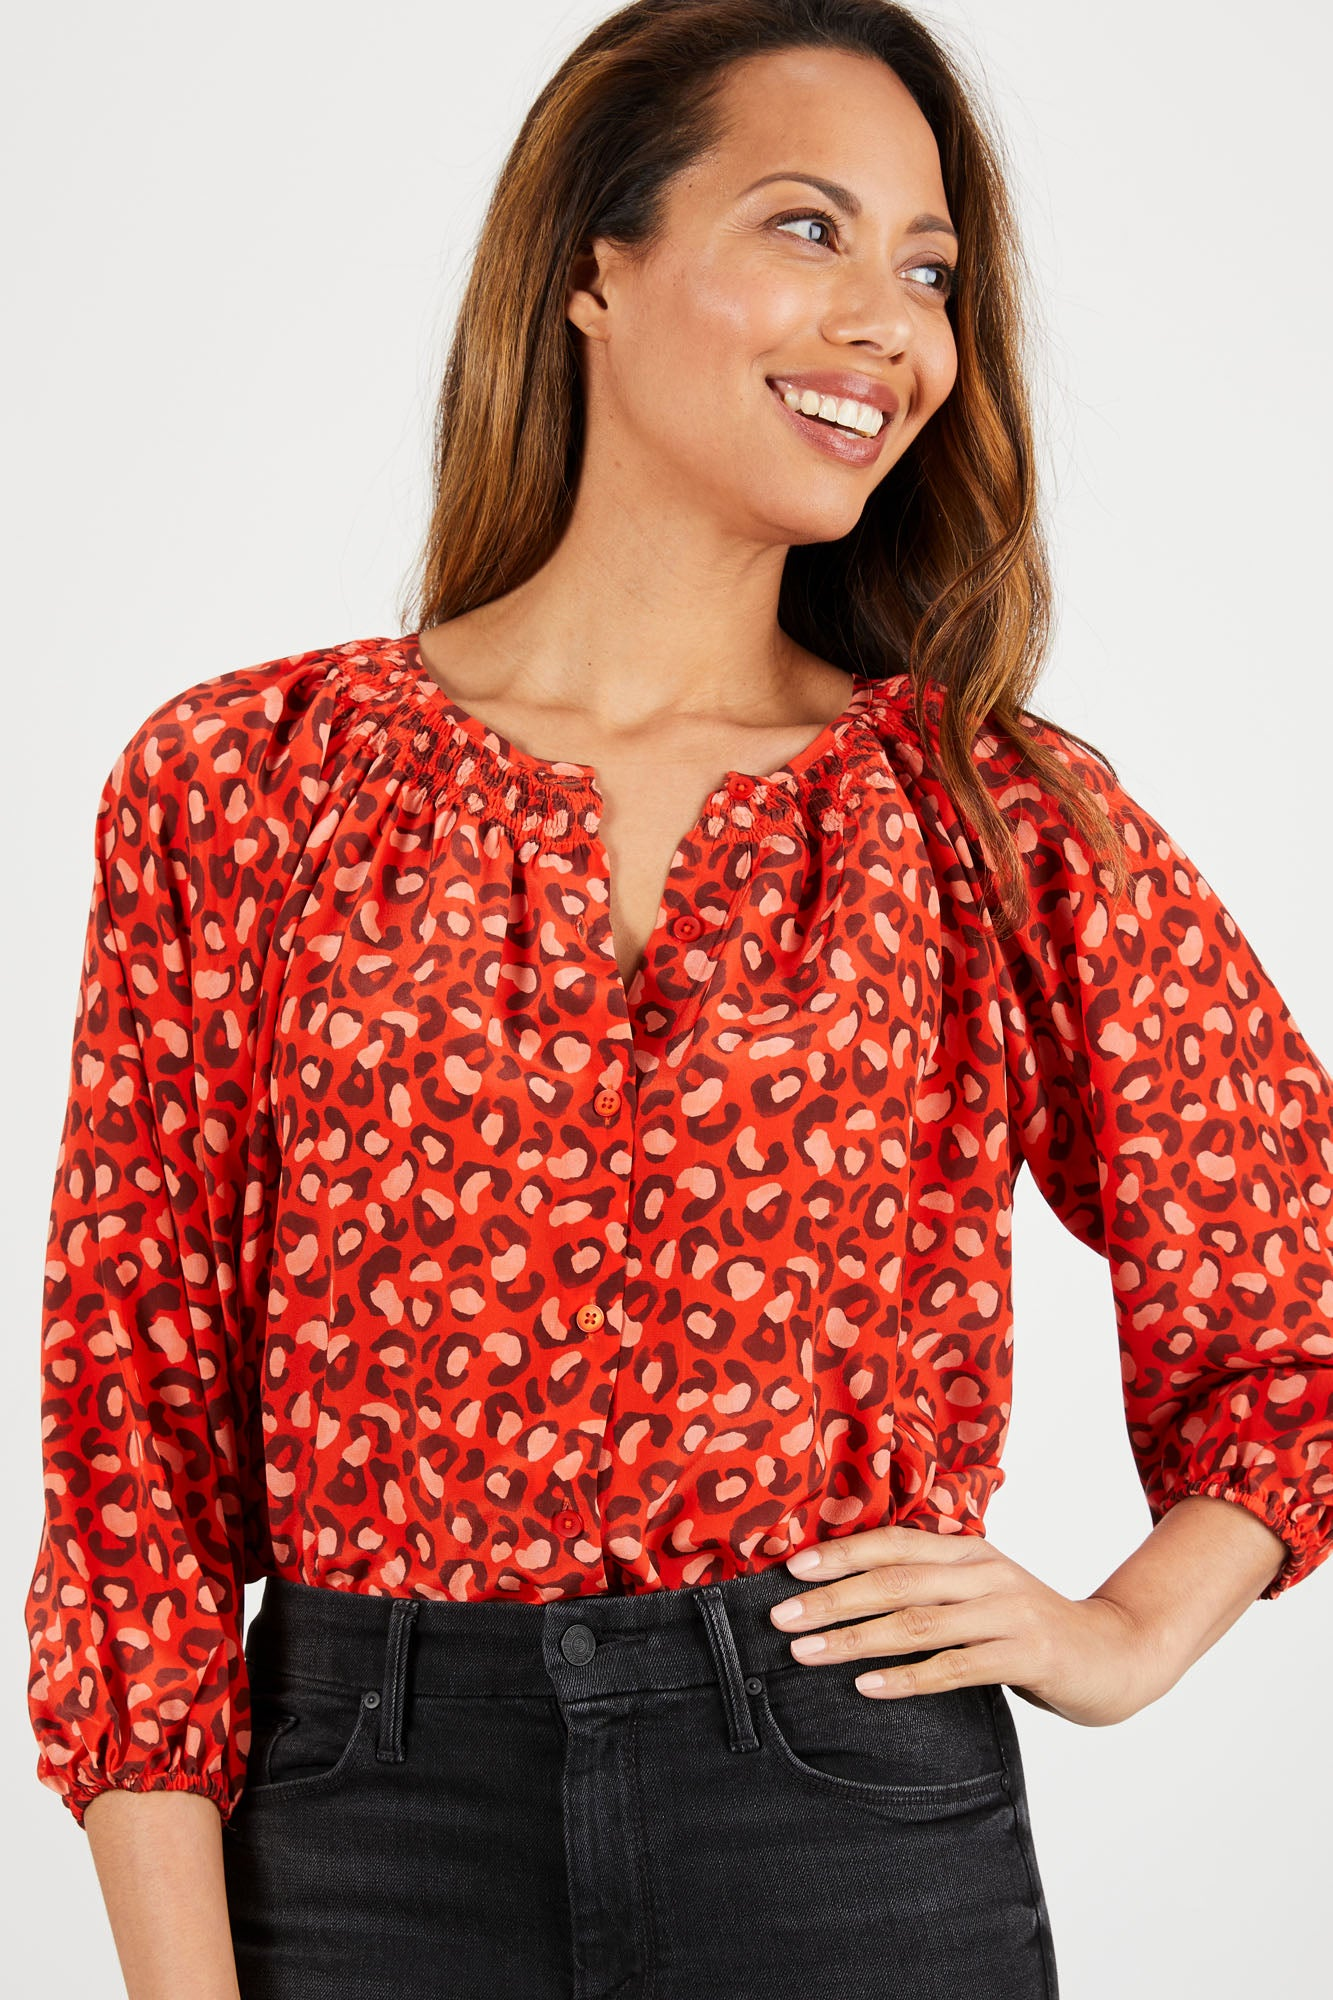 The Classic Blouse | Leo in Love